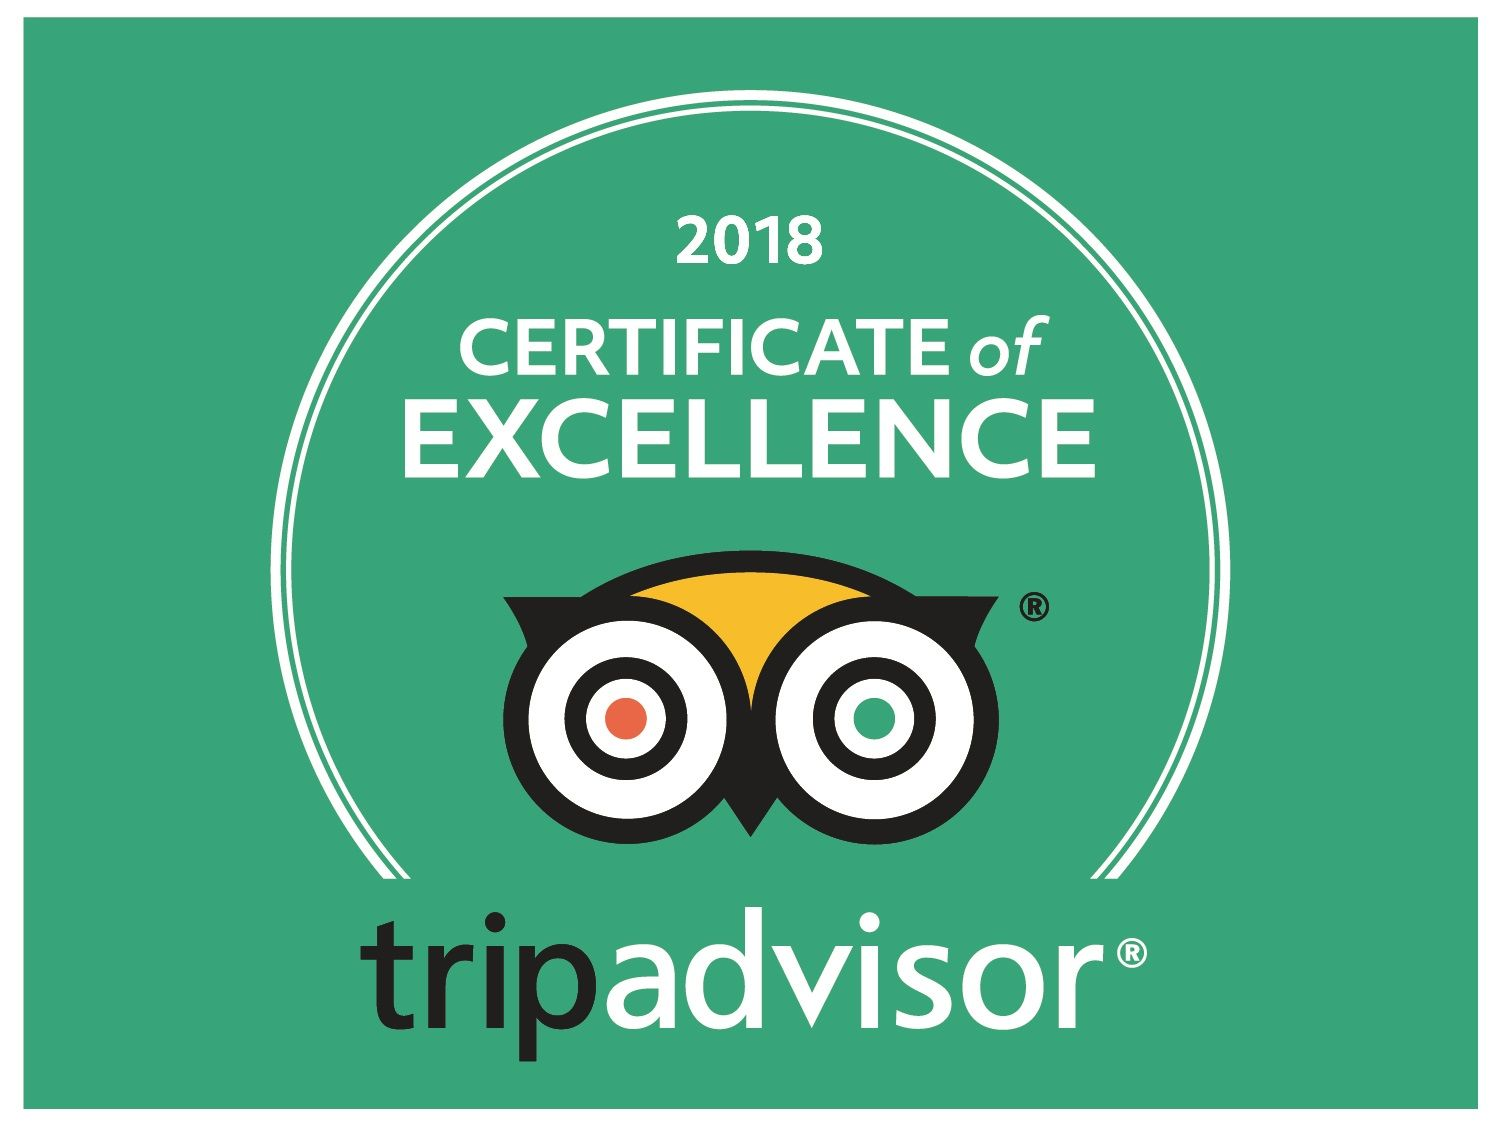 Tripadvisor Certificate of Excellence Winner 2018